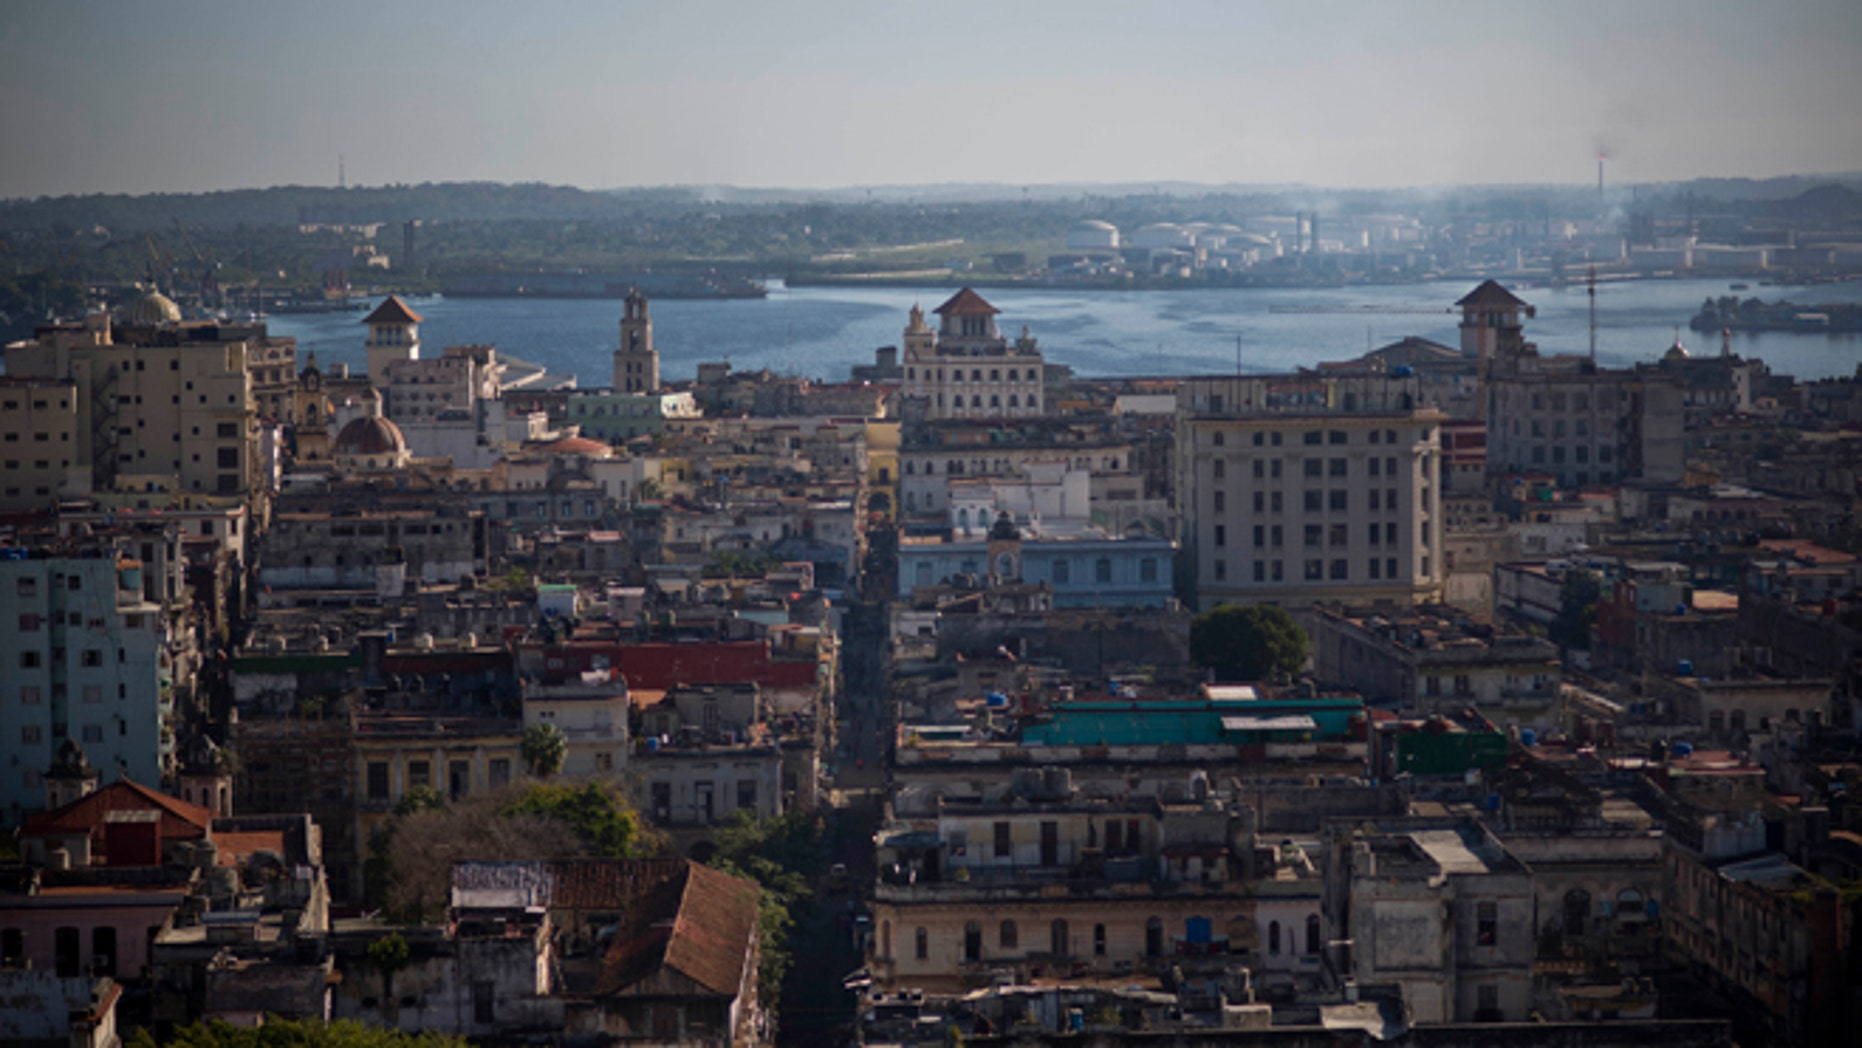 This Dec. 30, 2014 photo shows Havana from the capitol dome in Havana, Cuba. Everyone warns you Old Havana is a facade, but it's impossible not to be taken by its charms. For a foreigner who isn't coming with predetermined notions of Cuba as global boogeyman or socialist paradise, each alley and avenue, each conversation with a Cuban, complicates the picture. (AP Photo/Ramon Espinosa)